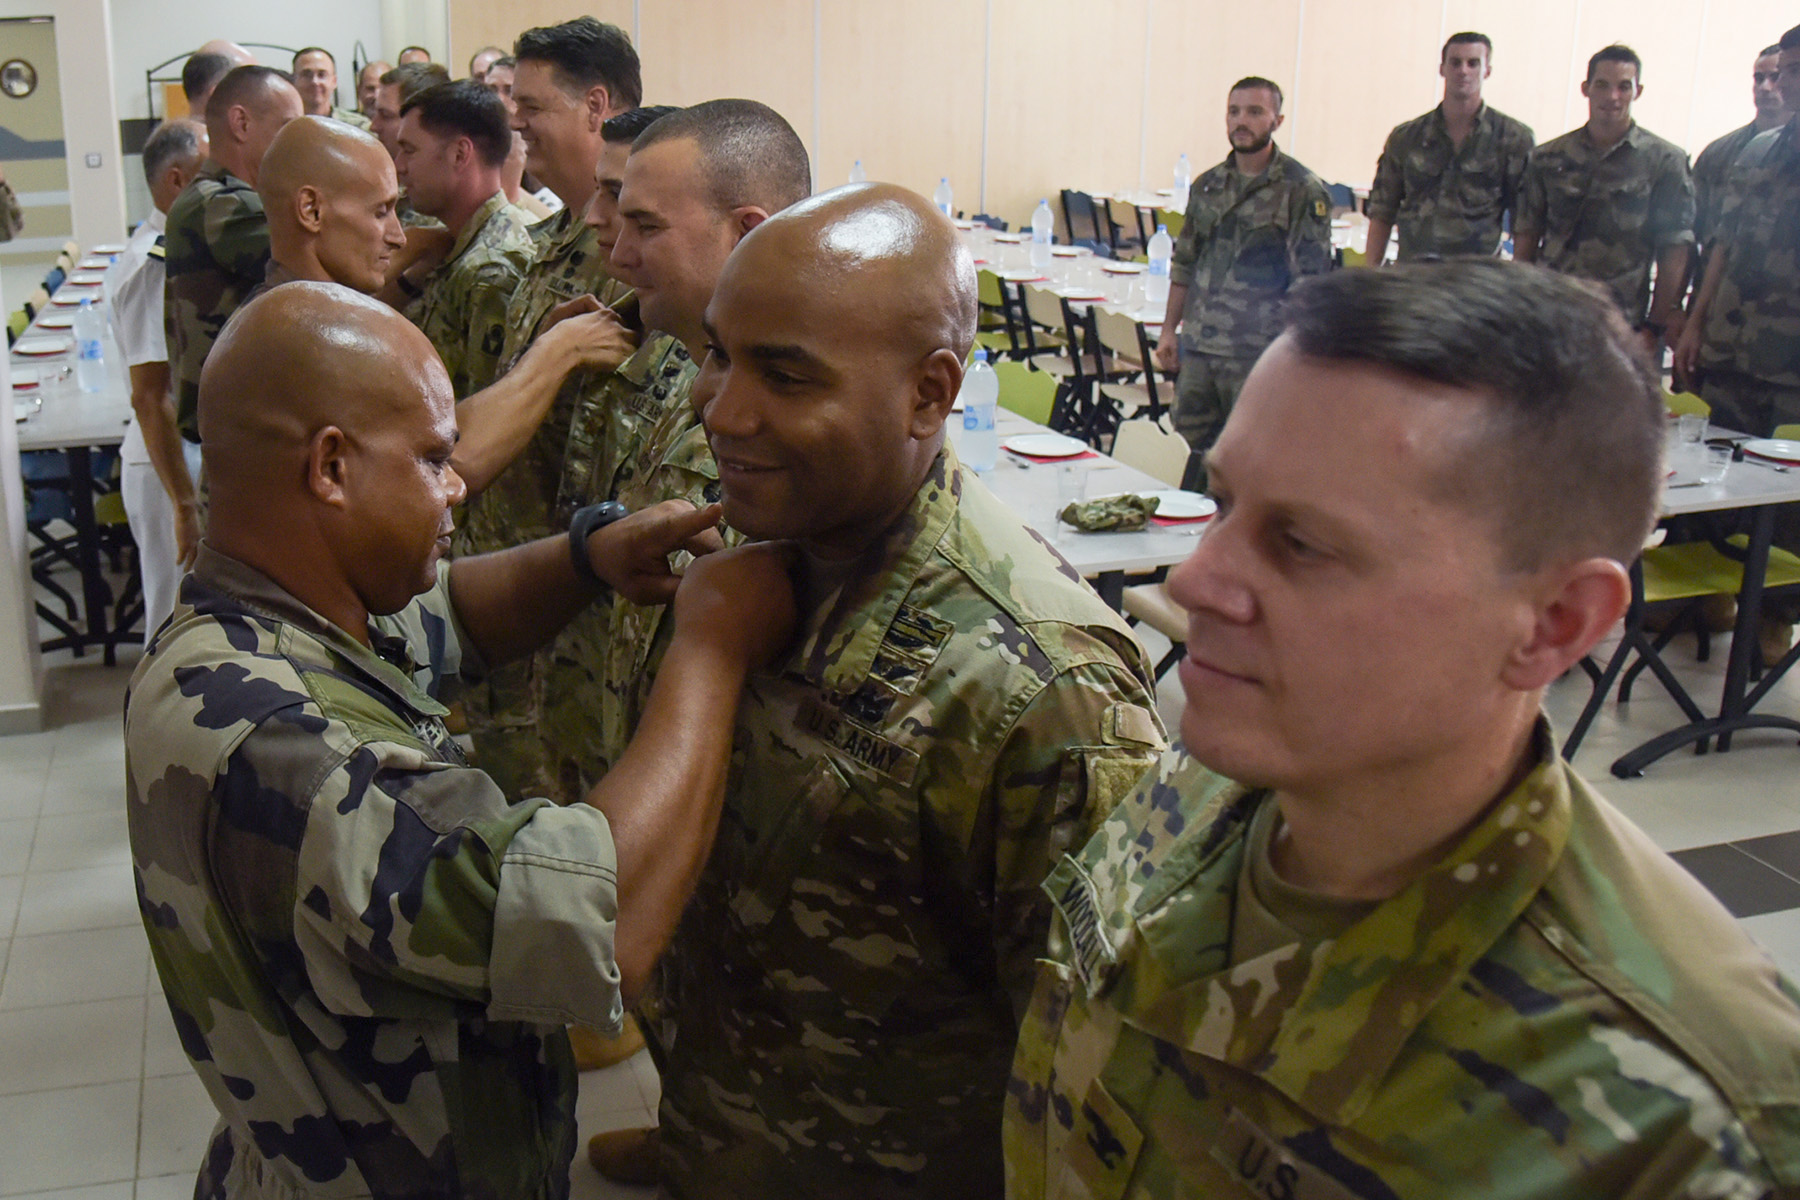 DJIBOUTI- French airborne forces pin jump wings on U.S. Army Soldiers for completing static line and high altitude low opening (HALO) jumps commemorating St. Michel, the patron saint of paratroopers, Sept. 29, 2016, at the French air base in Djibouti City, Djibouti. U.S., French and Djiboutian airborne forces began the St. Michel celebration with a static line and HALO jump at a designated drop zone, followed by a church mass and a ceremony where several U.S. airborne forces were awarded French jump wings. (U.S. Air Force photo by Staff Sgt. Tiffany DeNault)